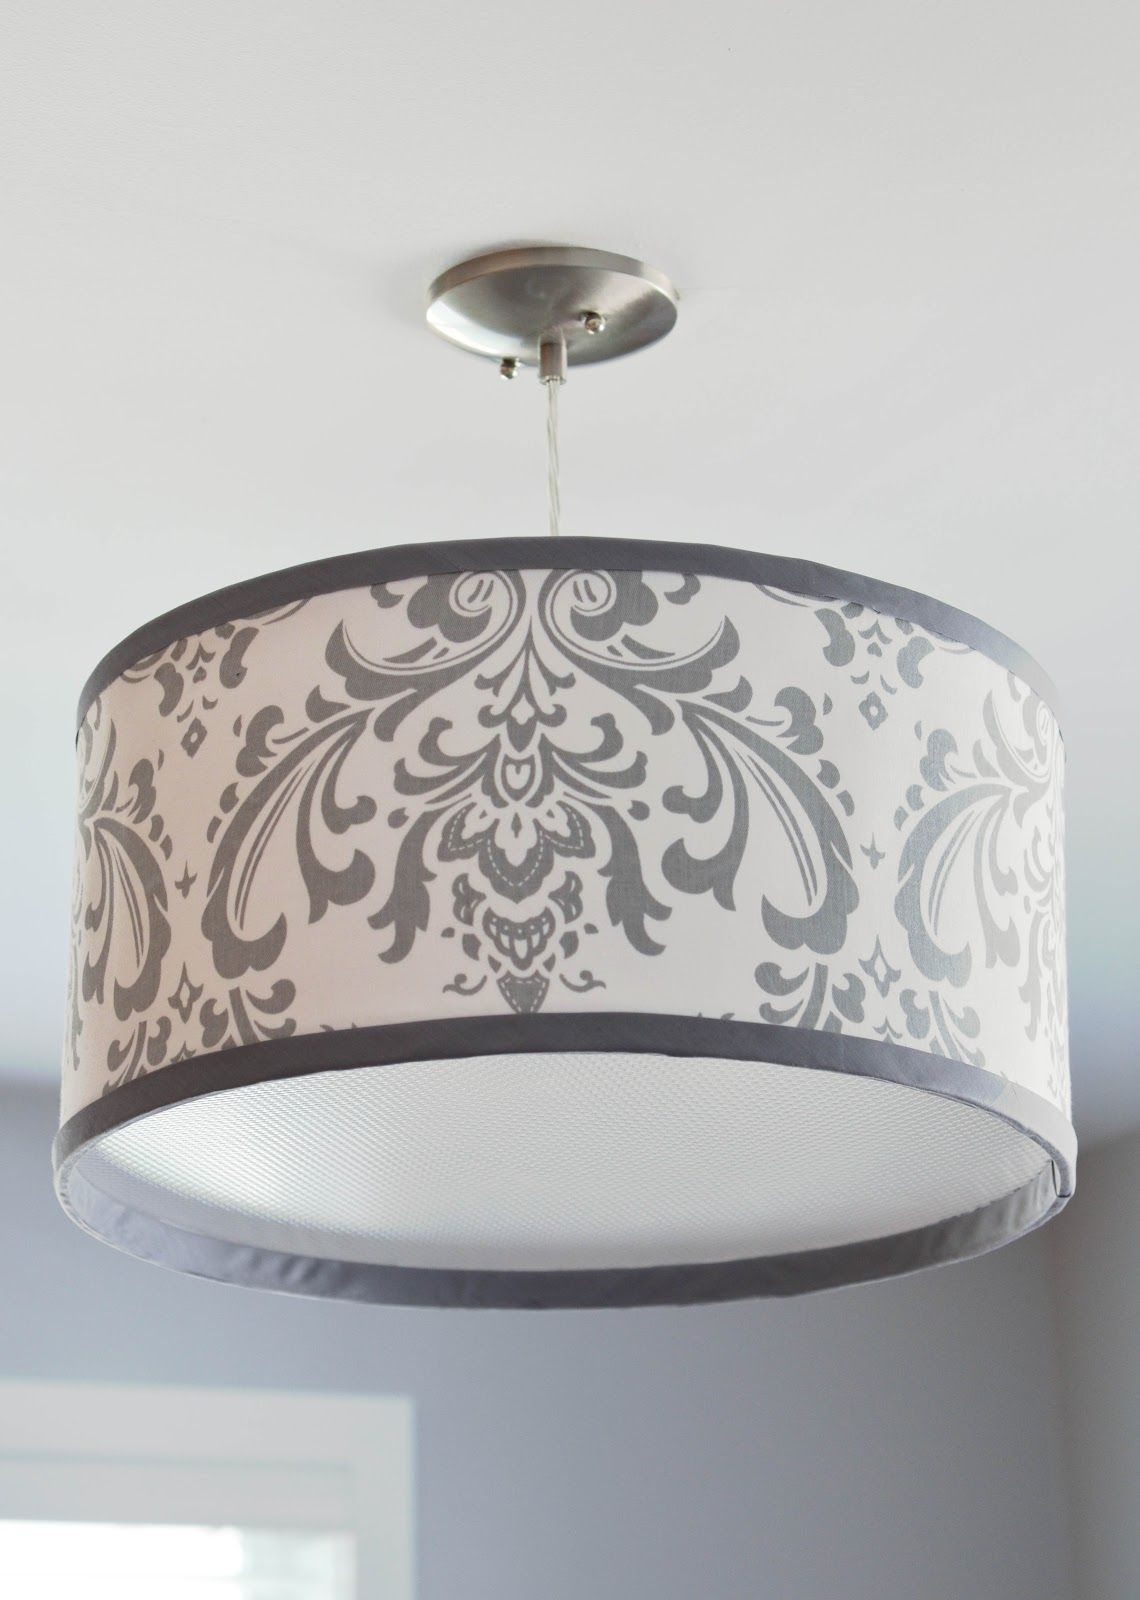 The project files diy drum shade this is so gorgeous and i am totally finding the time to do - Diy lamp shade ...